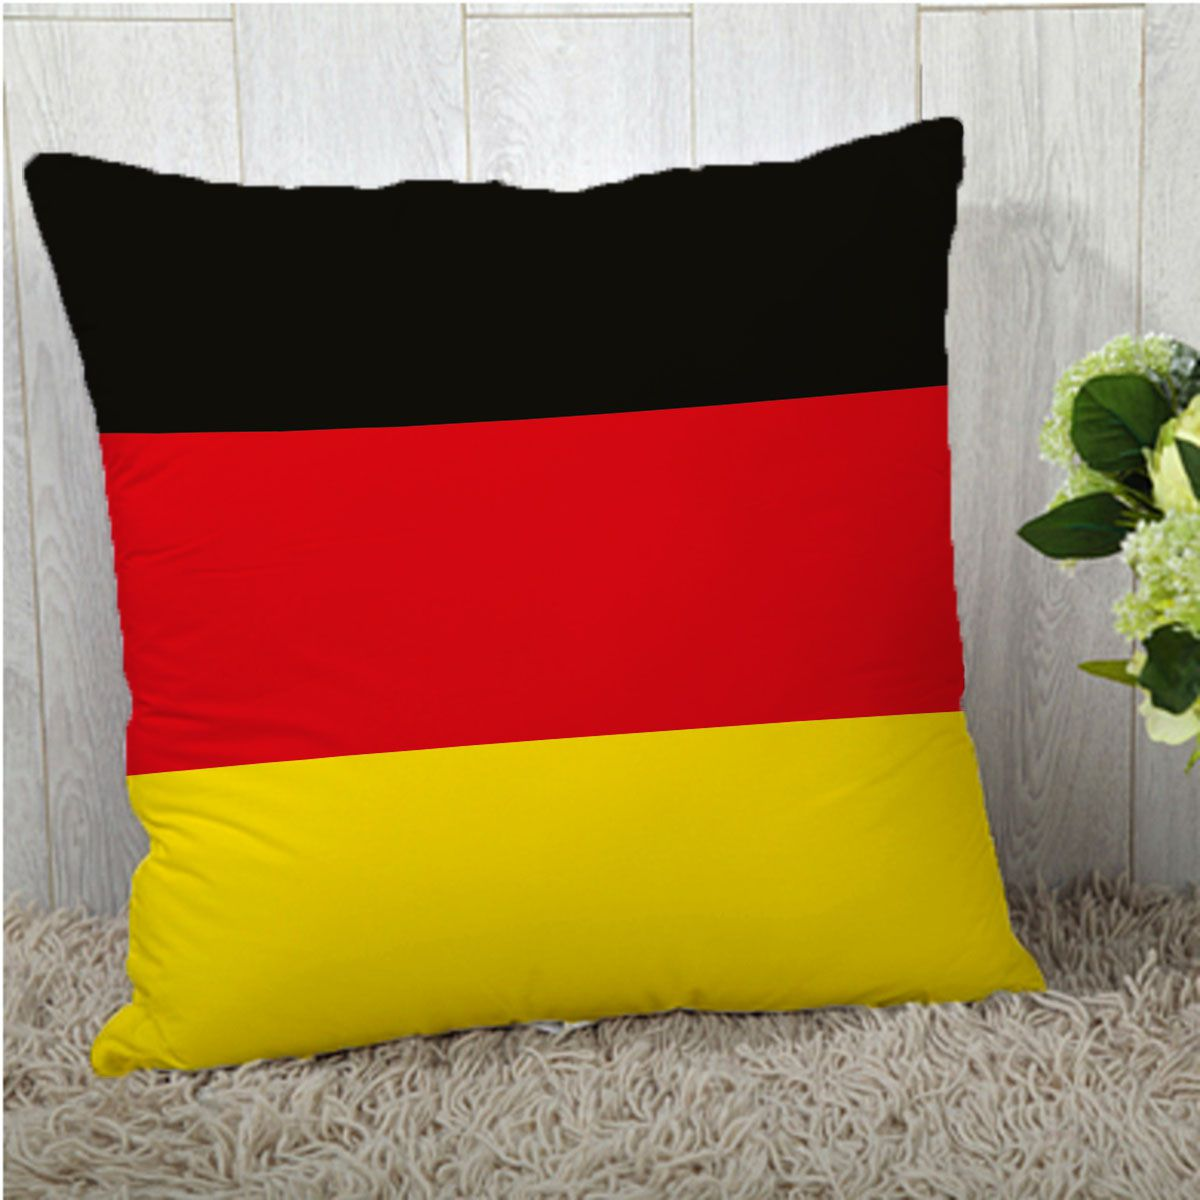 Stybuzz Single Polyester Cushion Covers 40X40 cm (16X16)